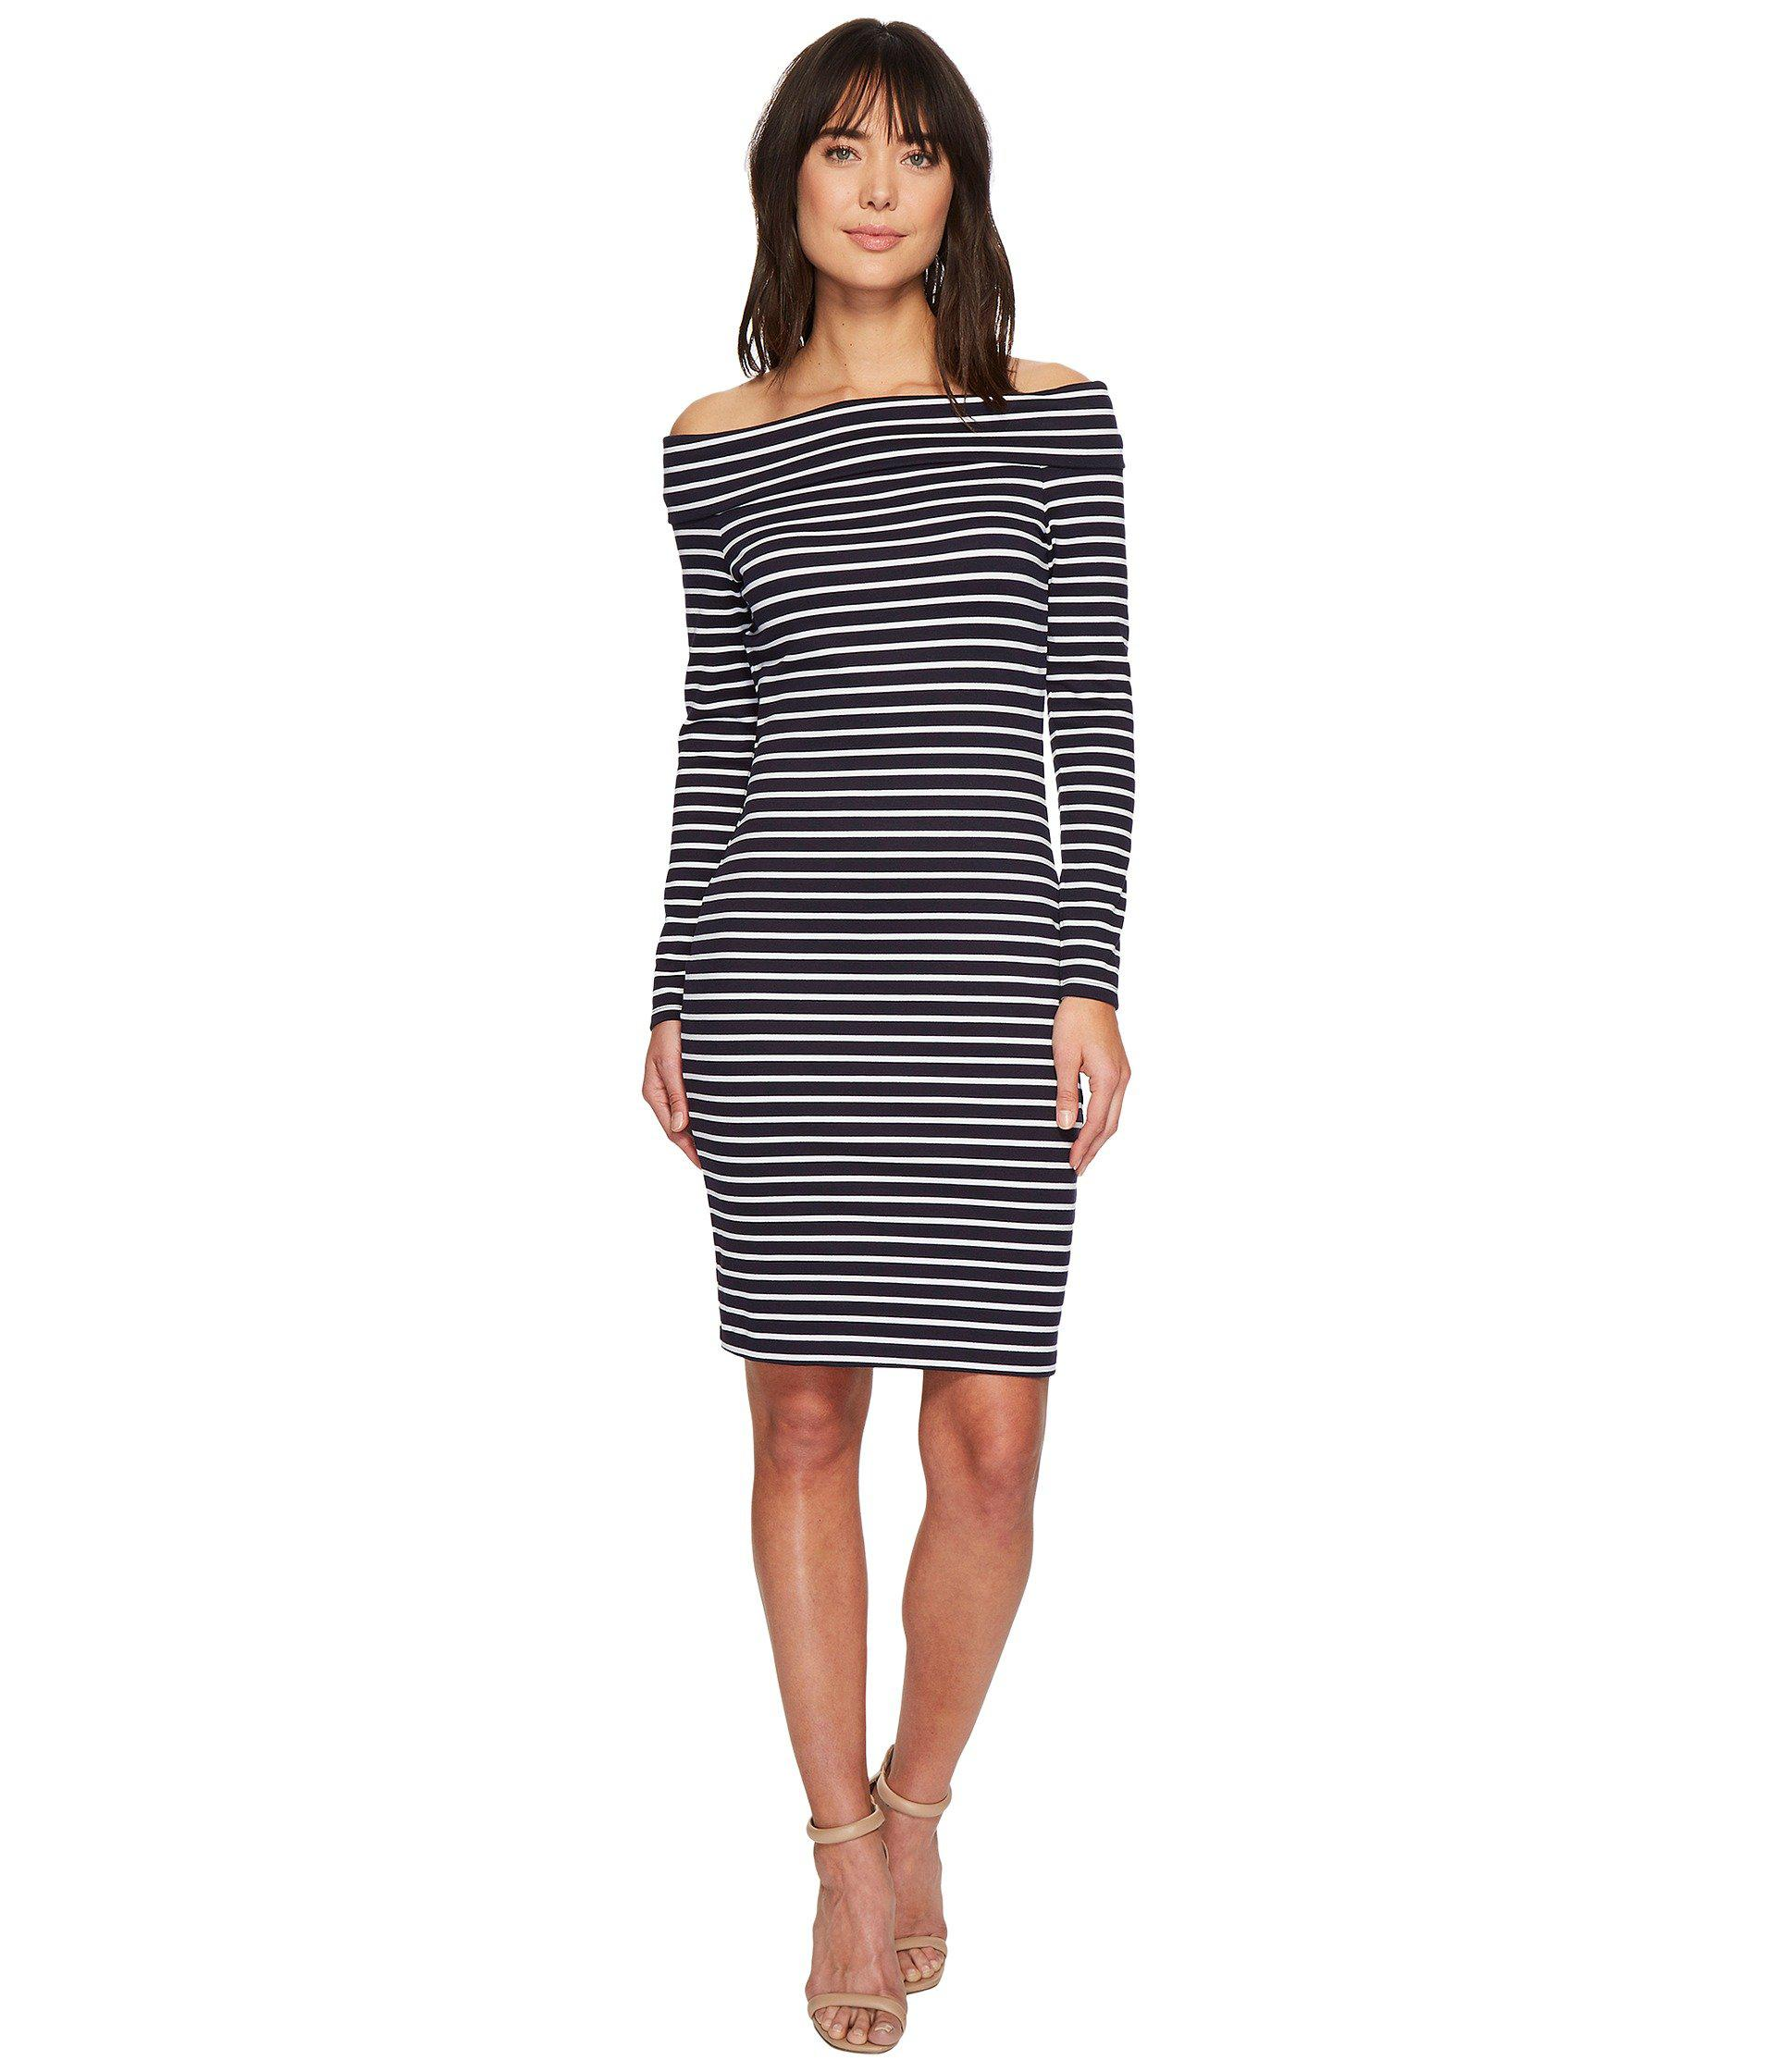 bc555ad608c Lyst - MICHAEL Michael Kors Striped Off Shoulder Dress in Blue ...